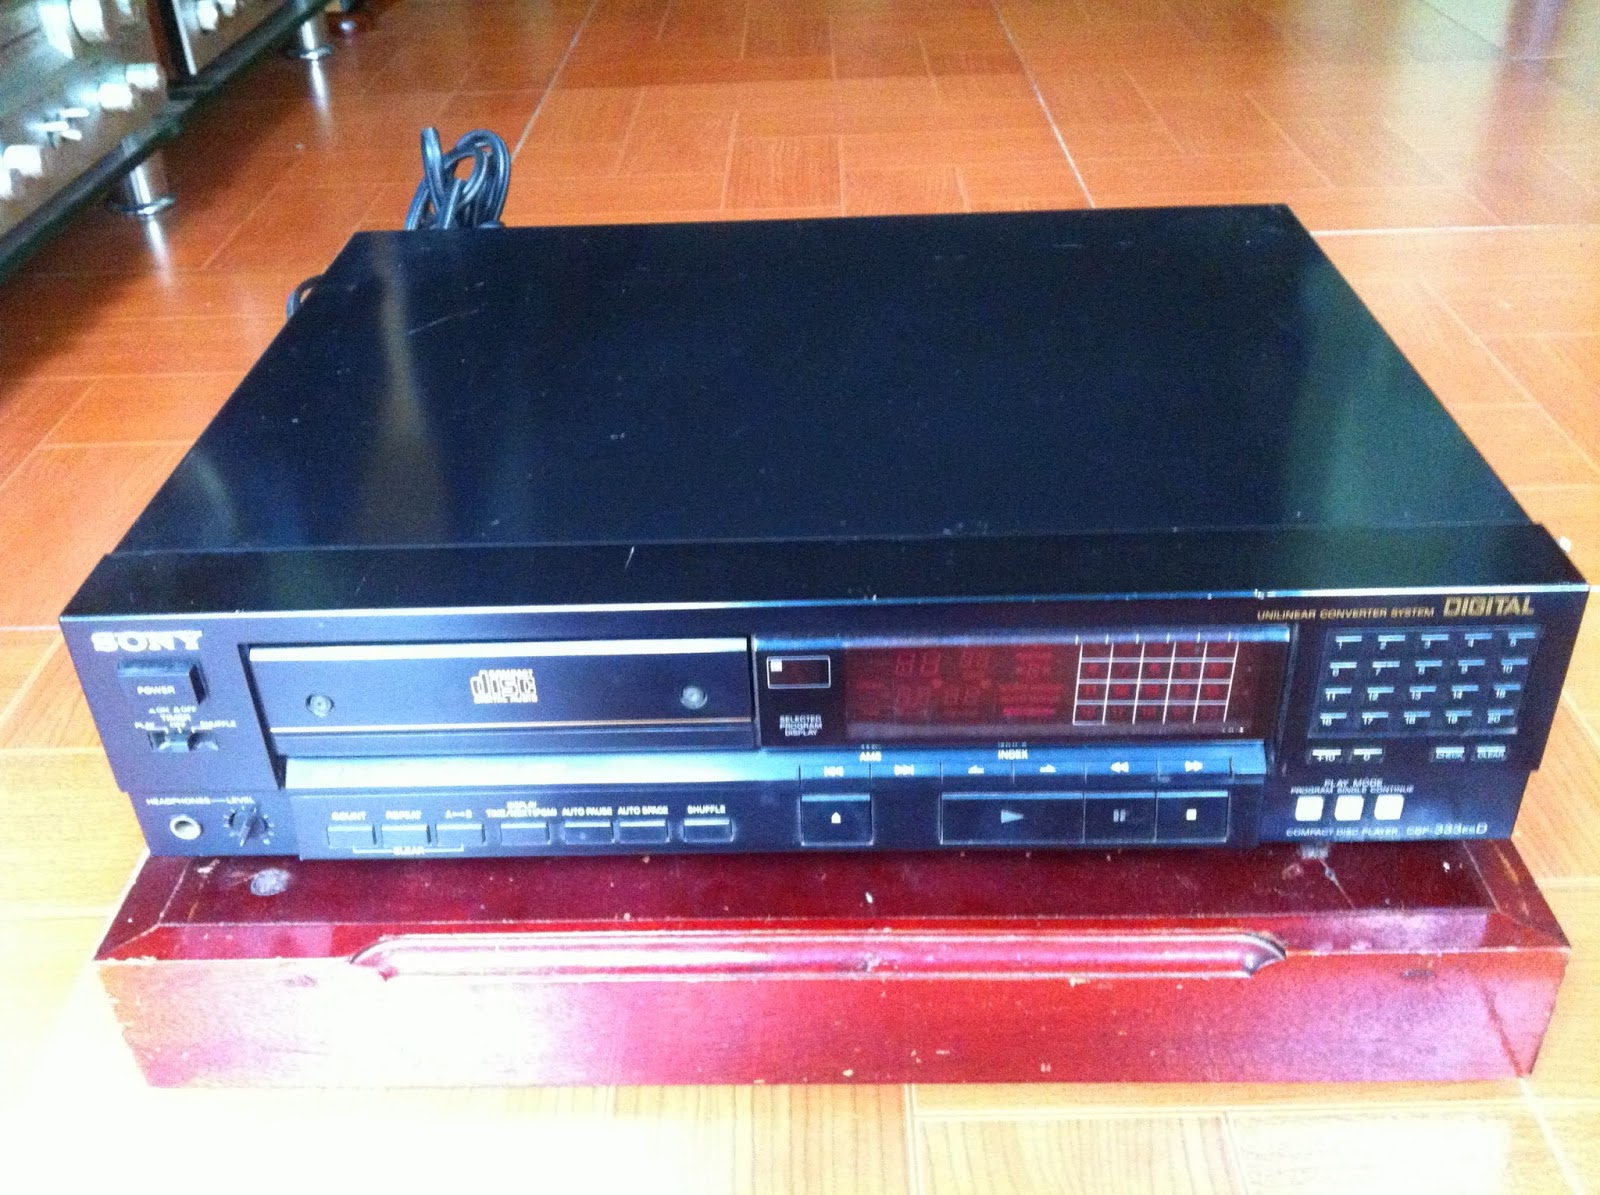 CD Player - Sony CDP-333ESD - Made in Japan